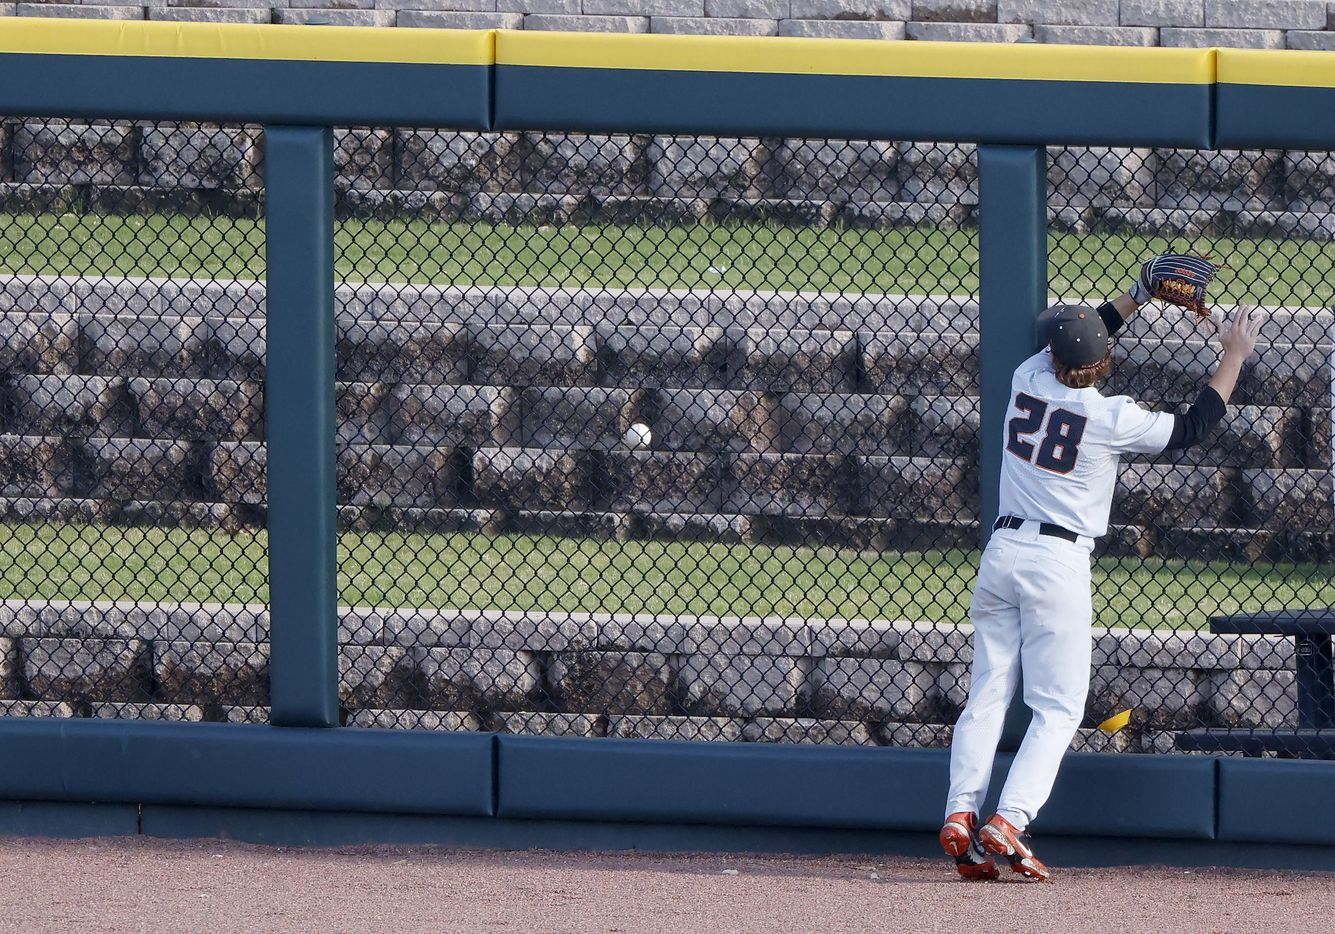 Oregon St. infielder Wade Meckler (28) watches Dallas BaptistÕs hitter River TownÕs two-run home run go over the right field wall in the eighth inning during the NCAA Division I Baseball Regional Championship game in Fort Worth, Texas on June 7, 2021. (Ron Jenkins/Special Contributor)